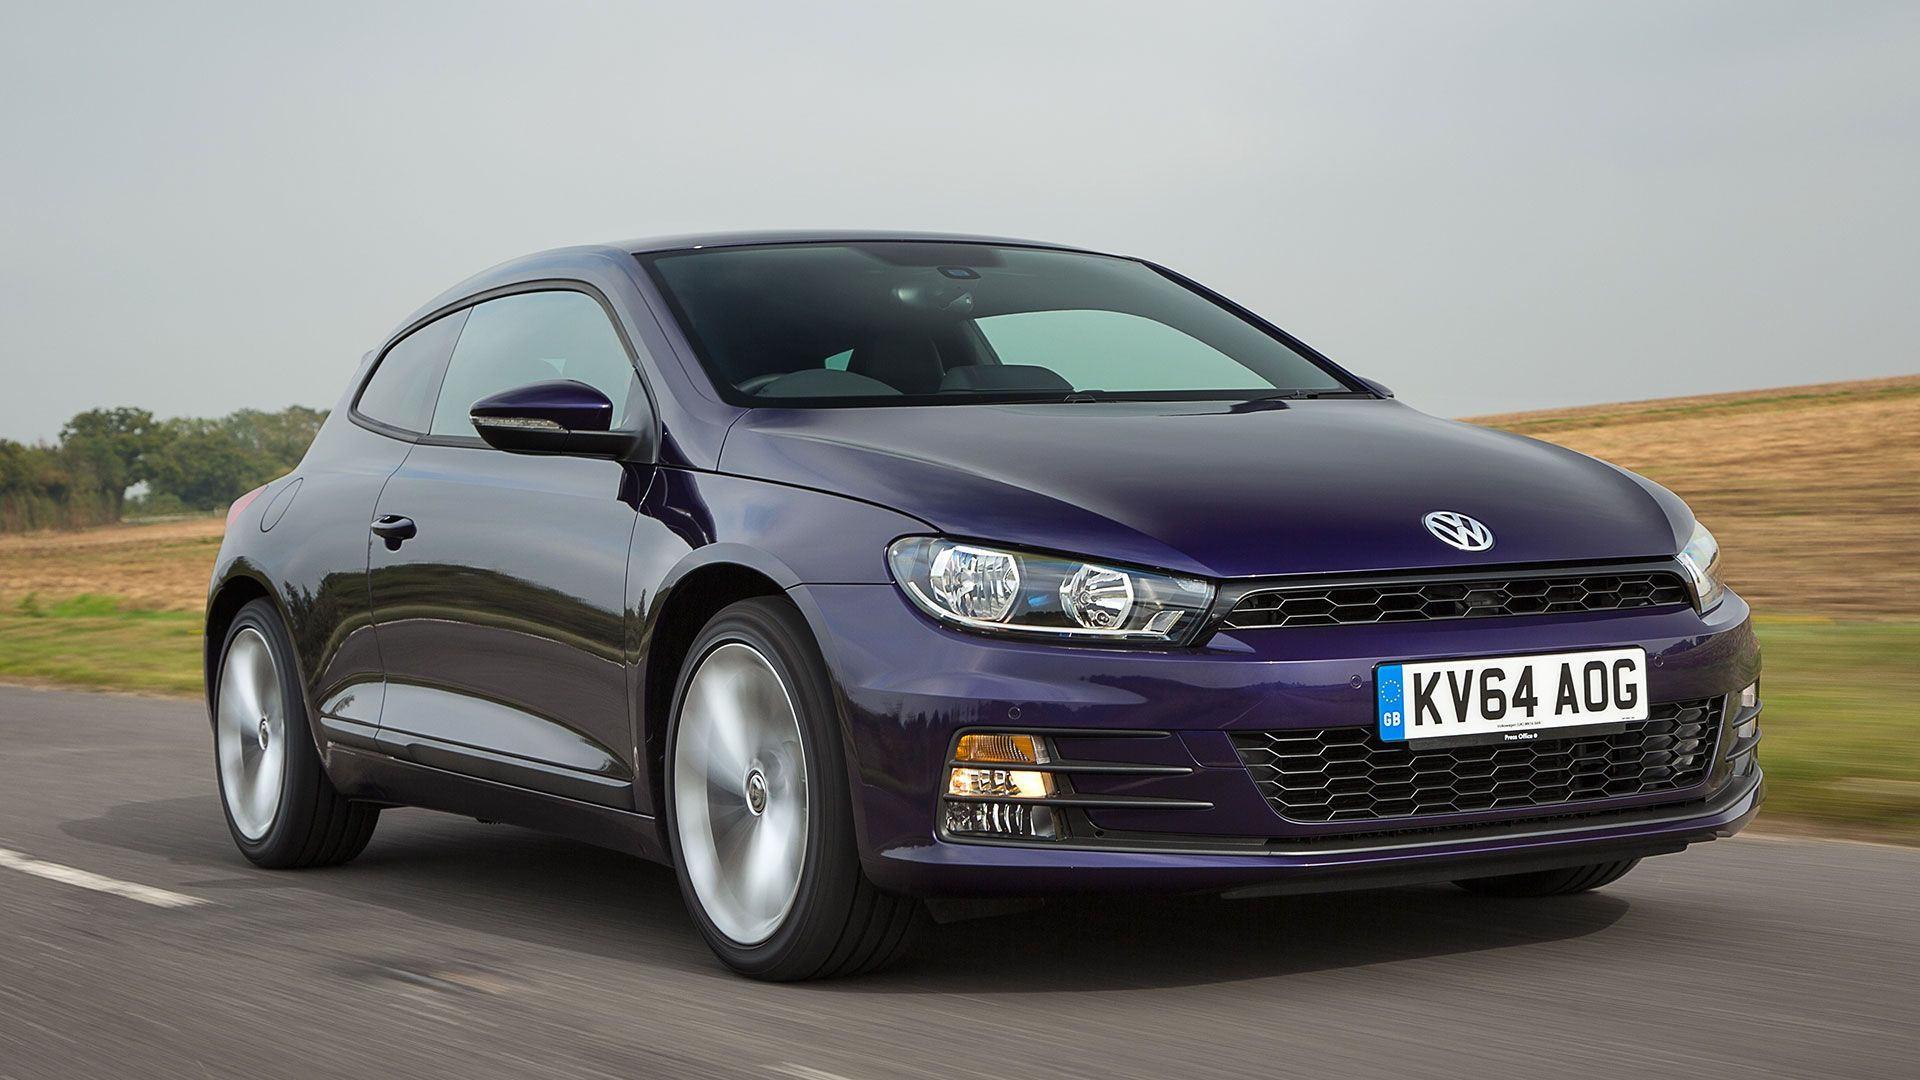 Volkswagen Scirocco BlueMotion Tech image